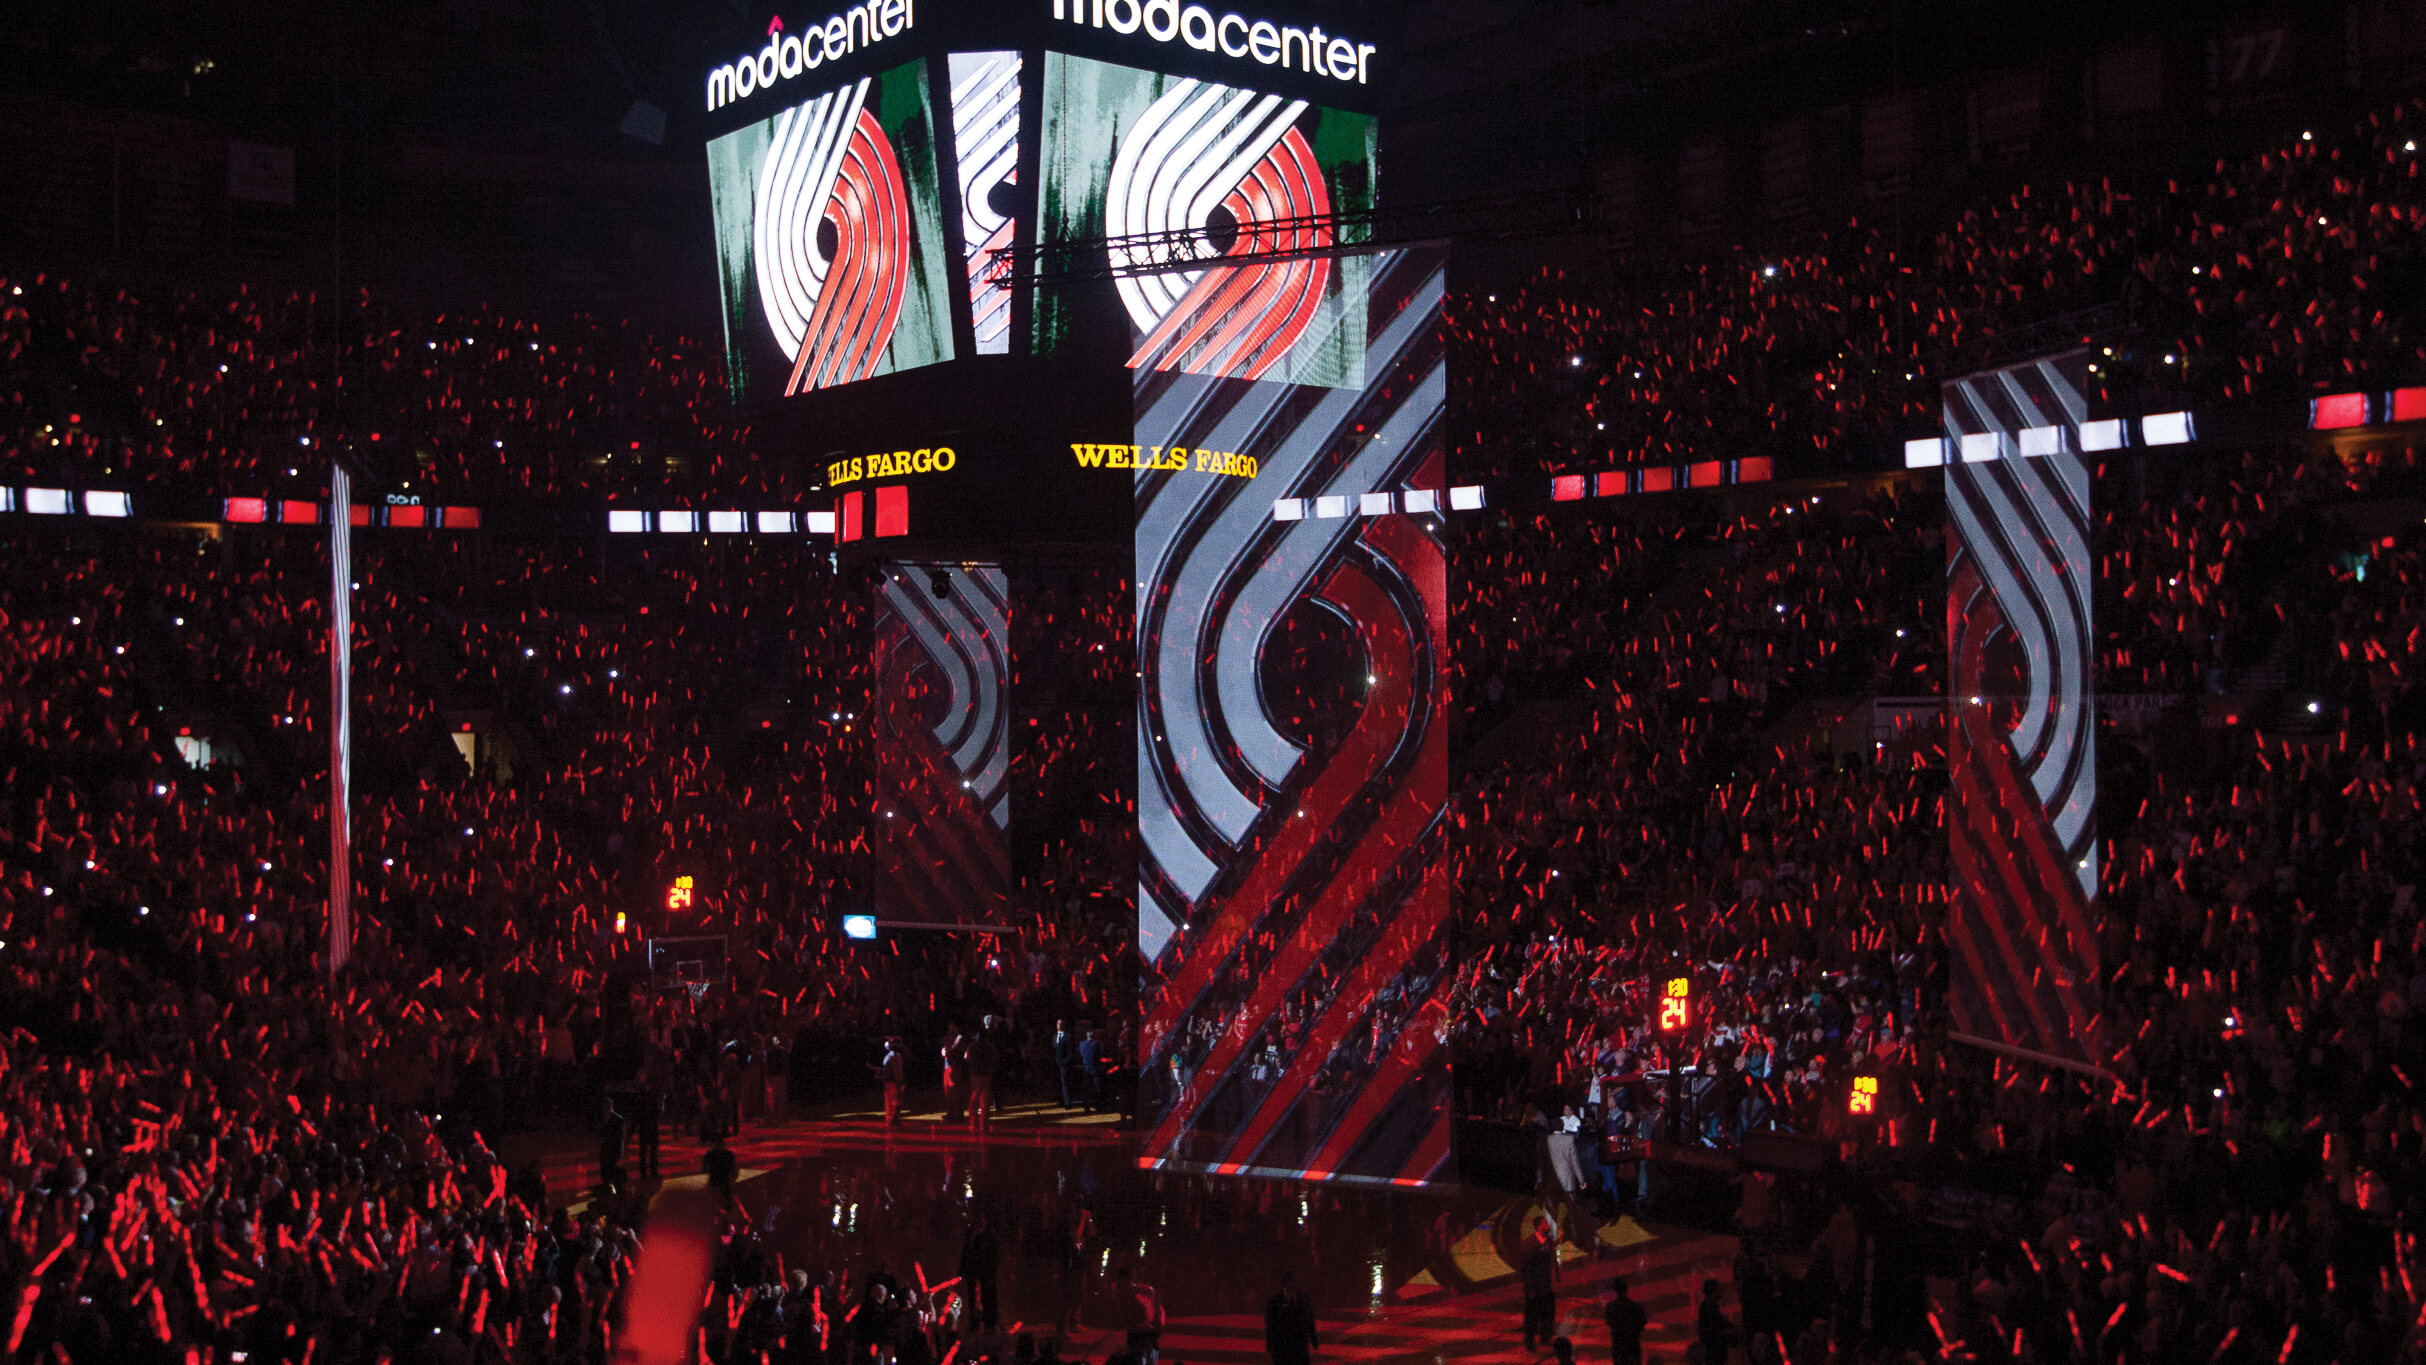 Moda Center Rose Garden Portland Trailblazers NBA Arenas & Venues Ticketmaster